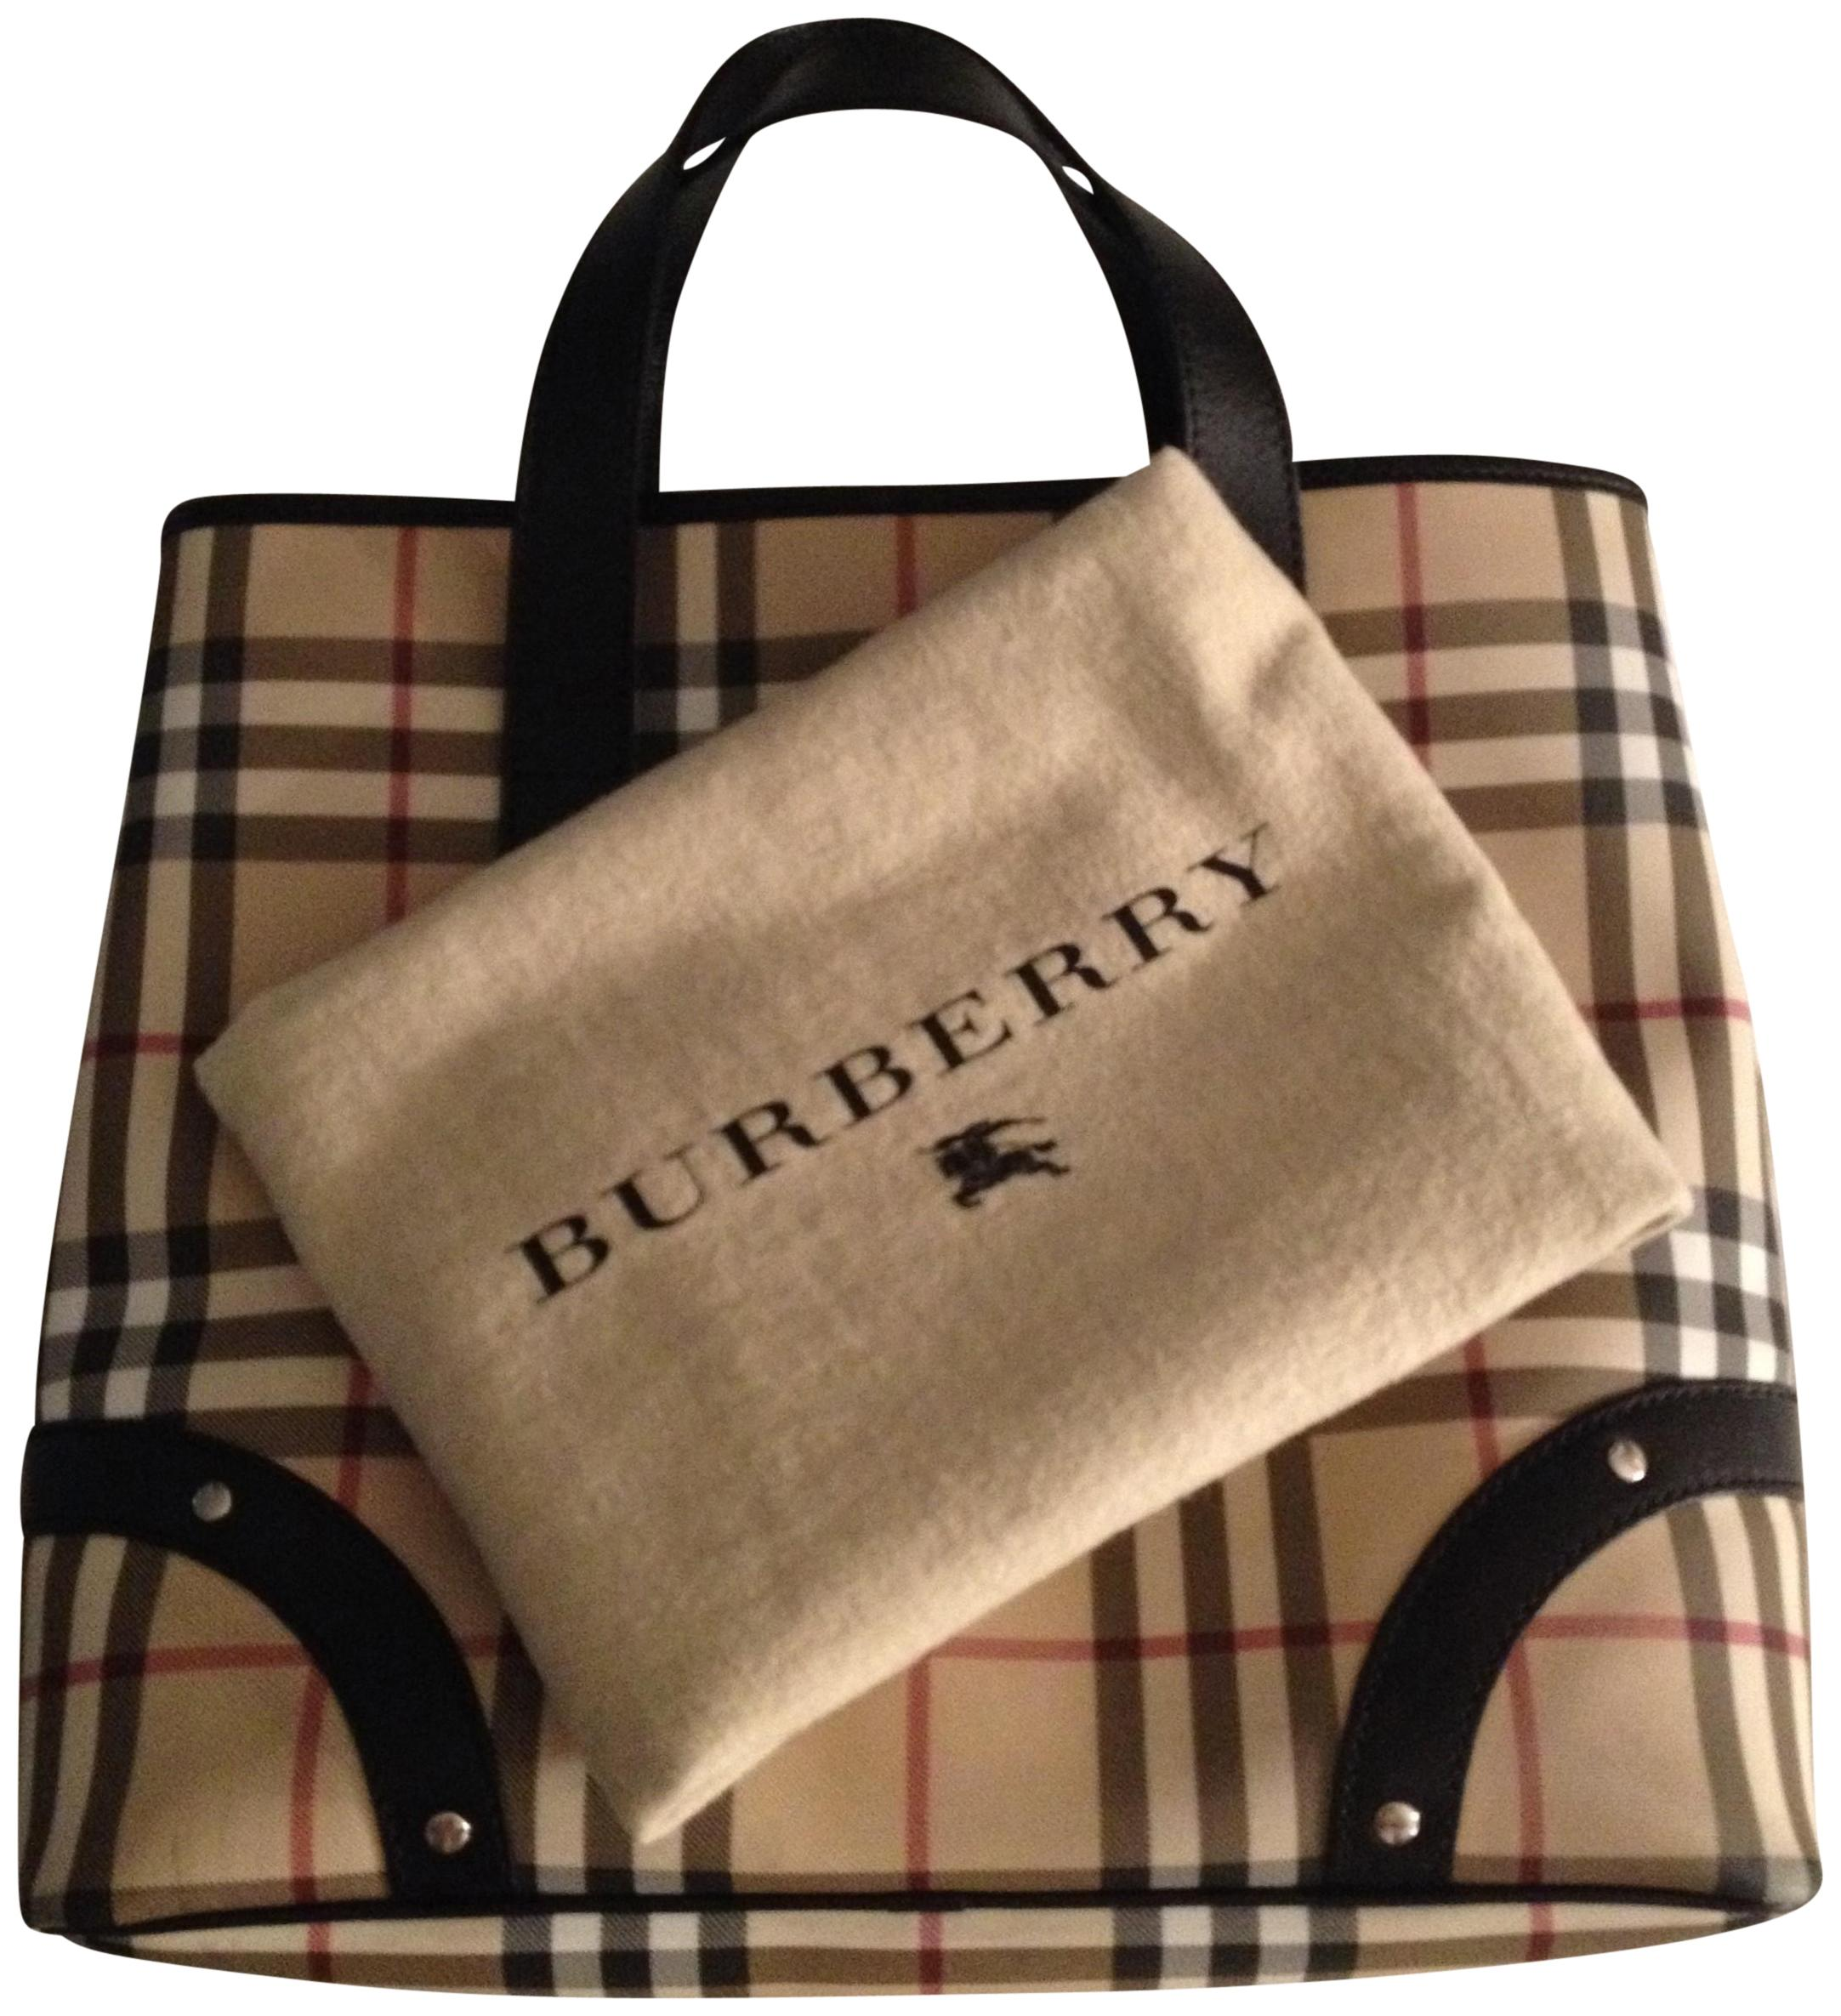 burberry bags and purses on sale